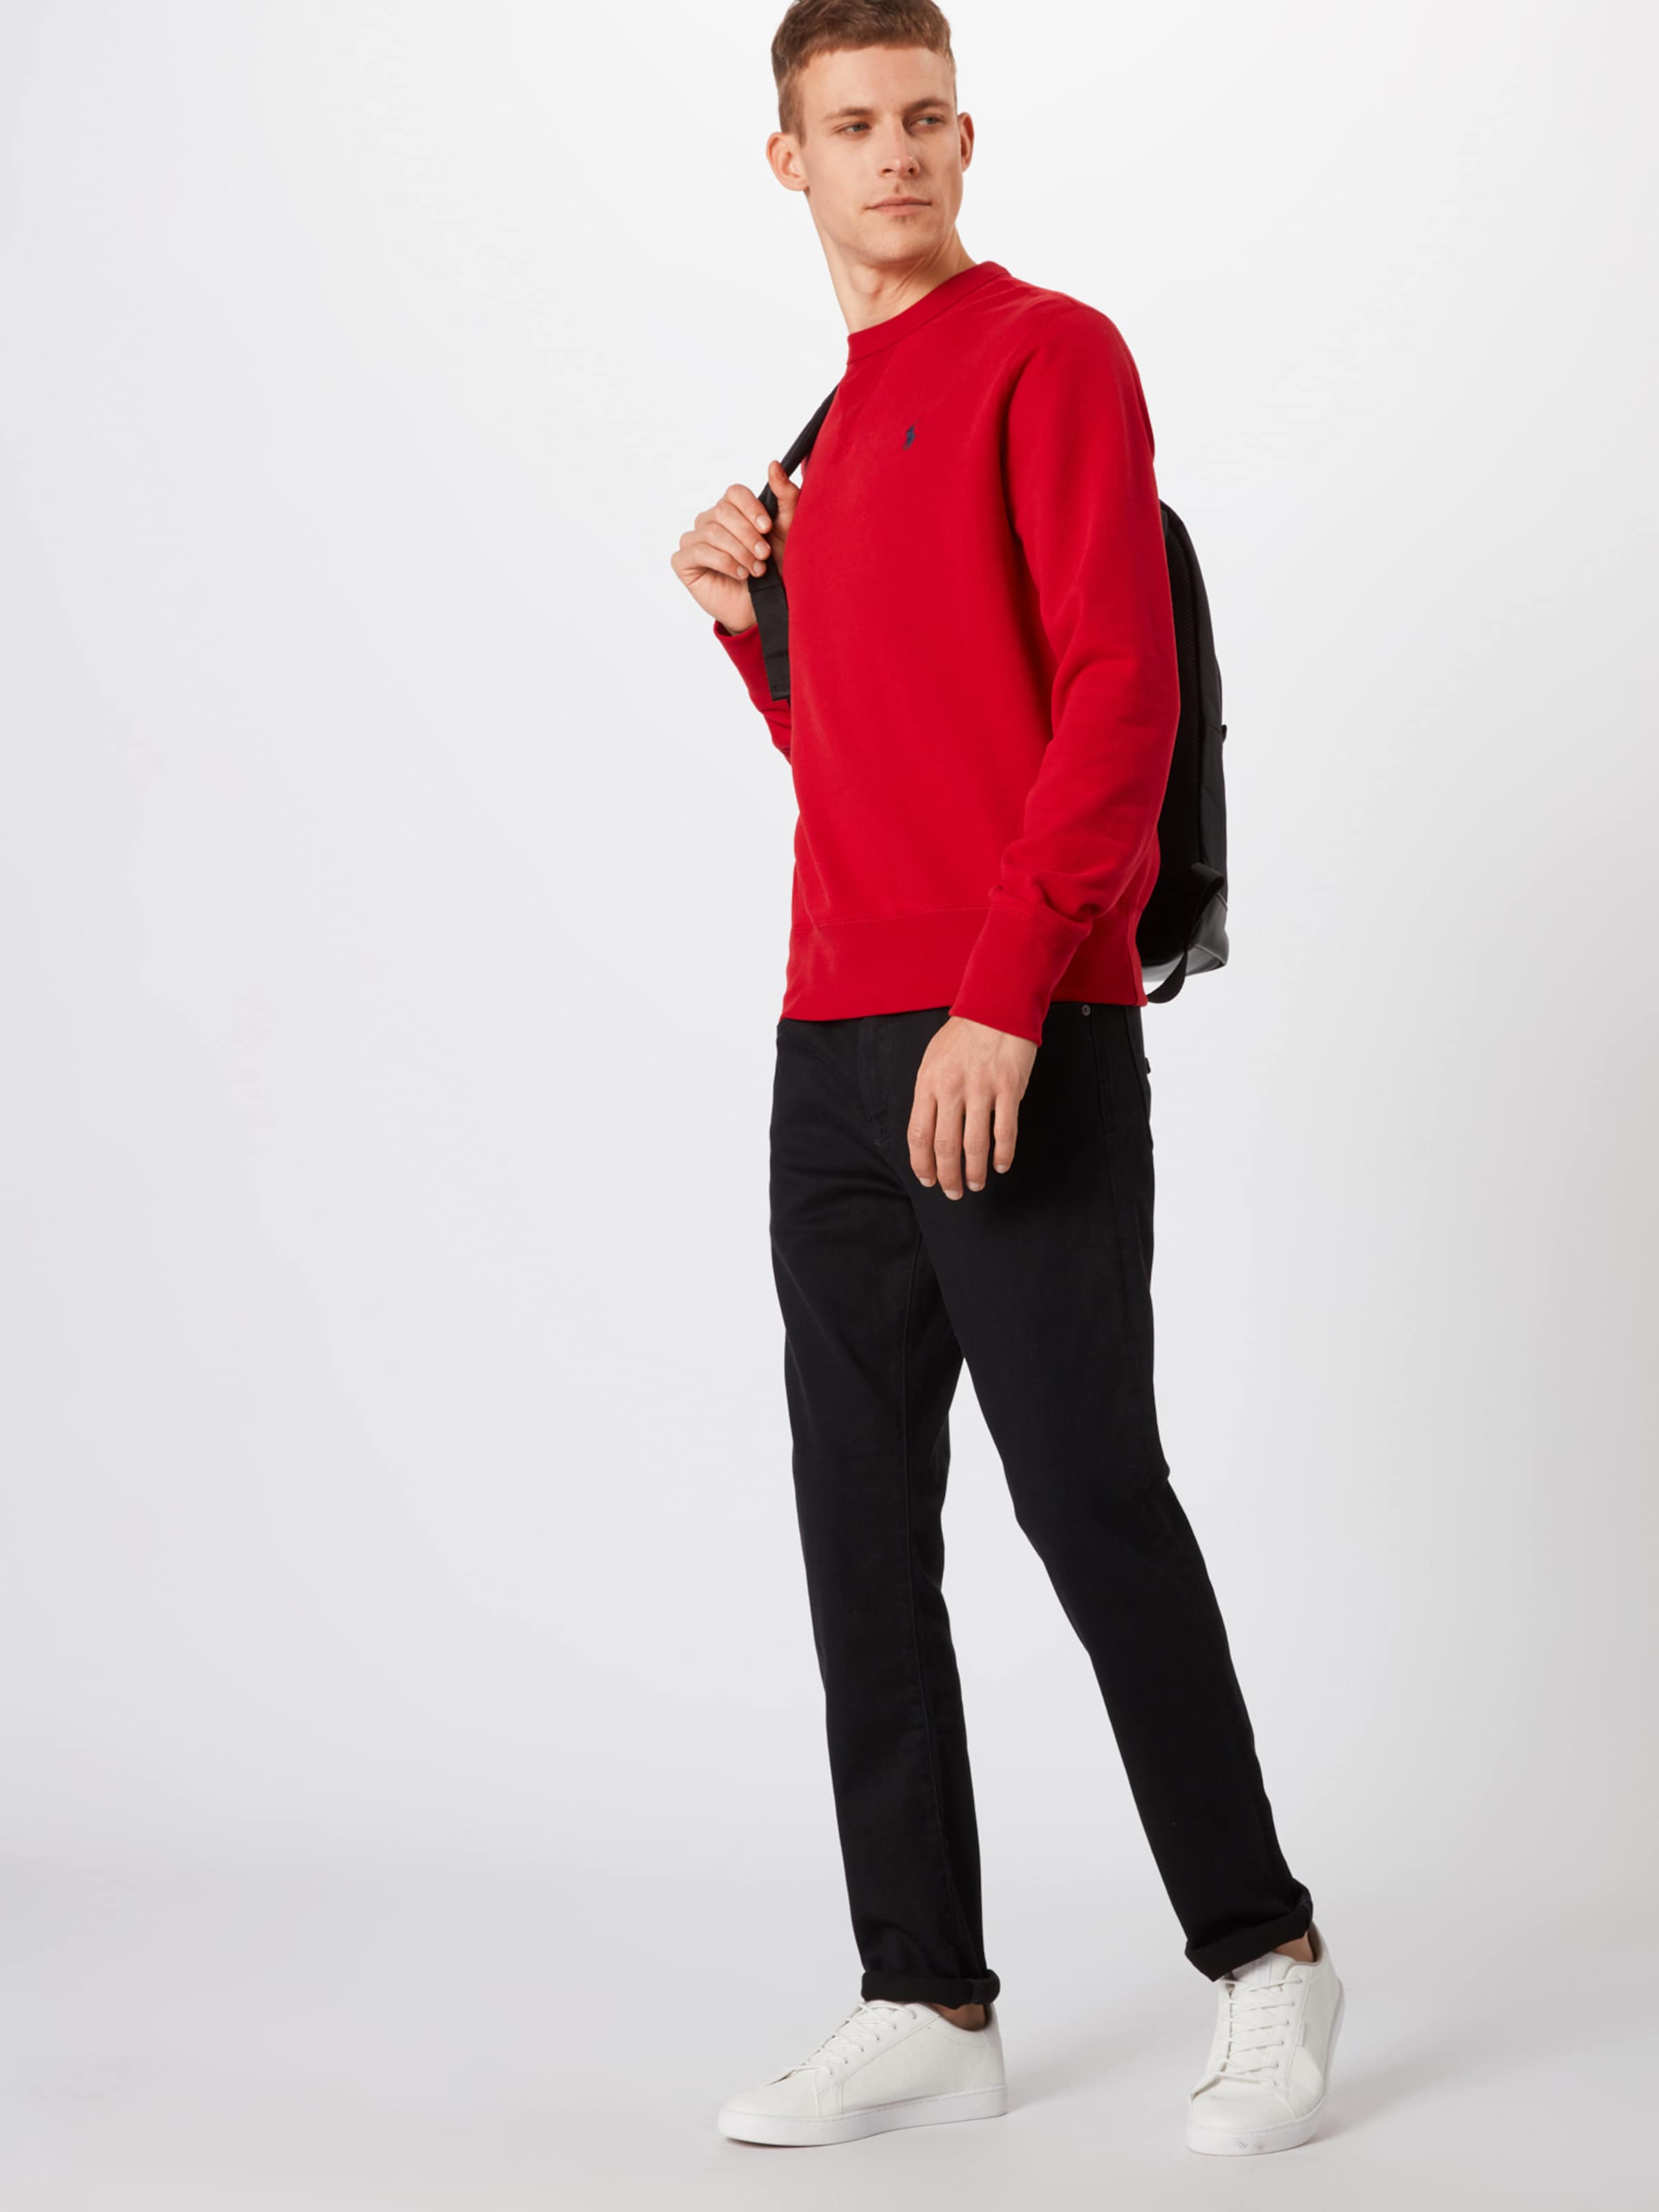 M1 knit' Lauren 'lscn Ralph shirt Sweat En Polo Sleeve Noir long wvmN80nO